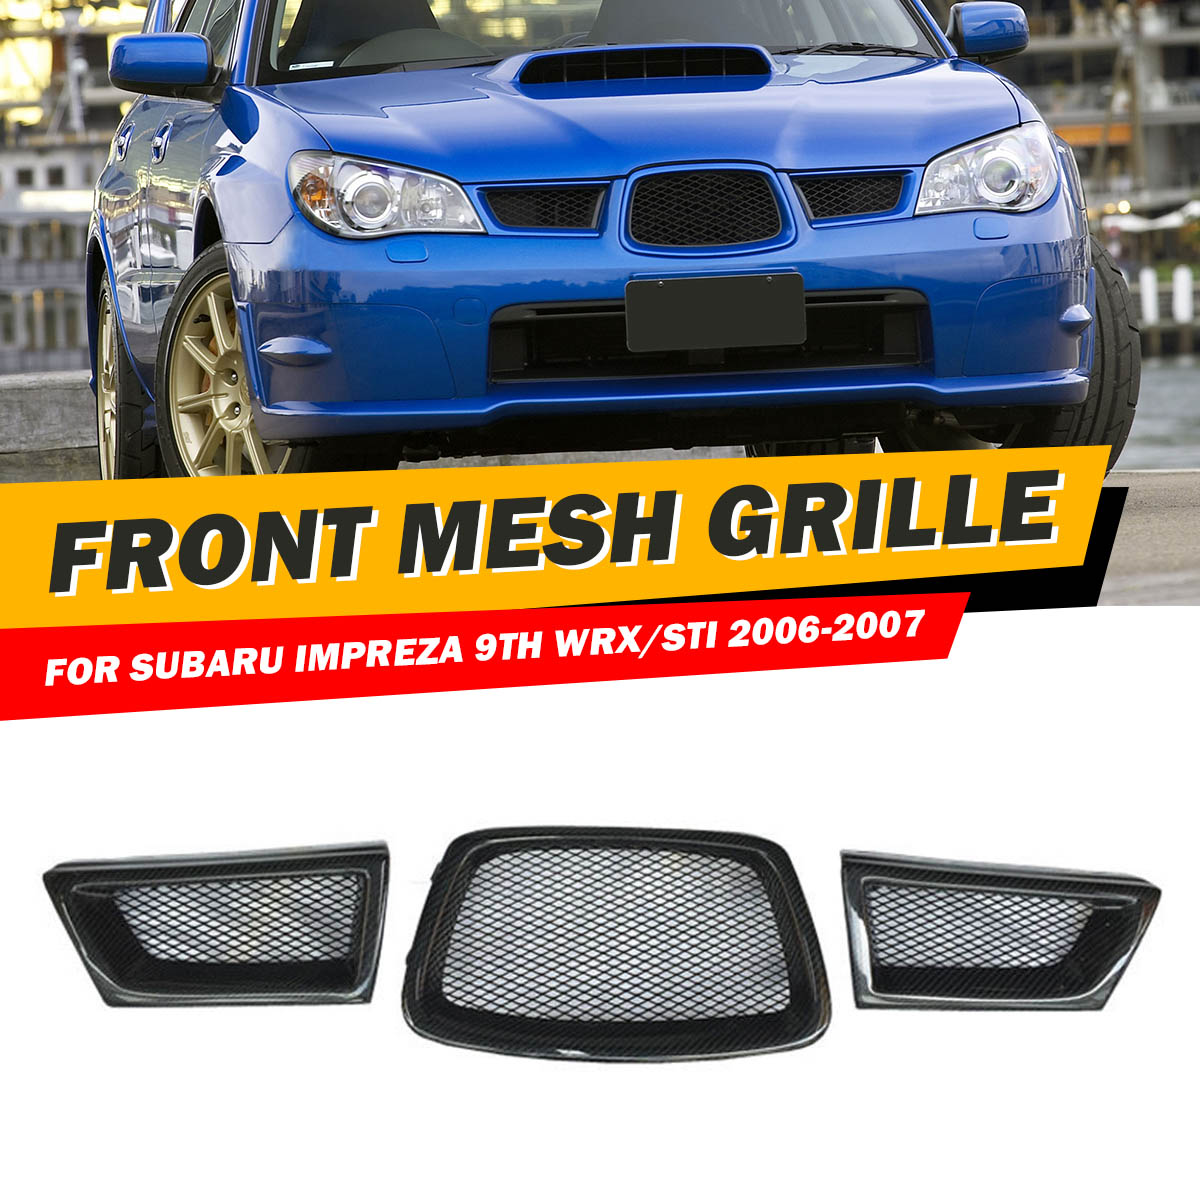 Black 3Pcs Carbon Fiber Car Front Lower Mesh Grill Grille for subaru Impreza WRX STi 9th 2006-2007 28012 grille